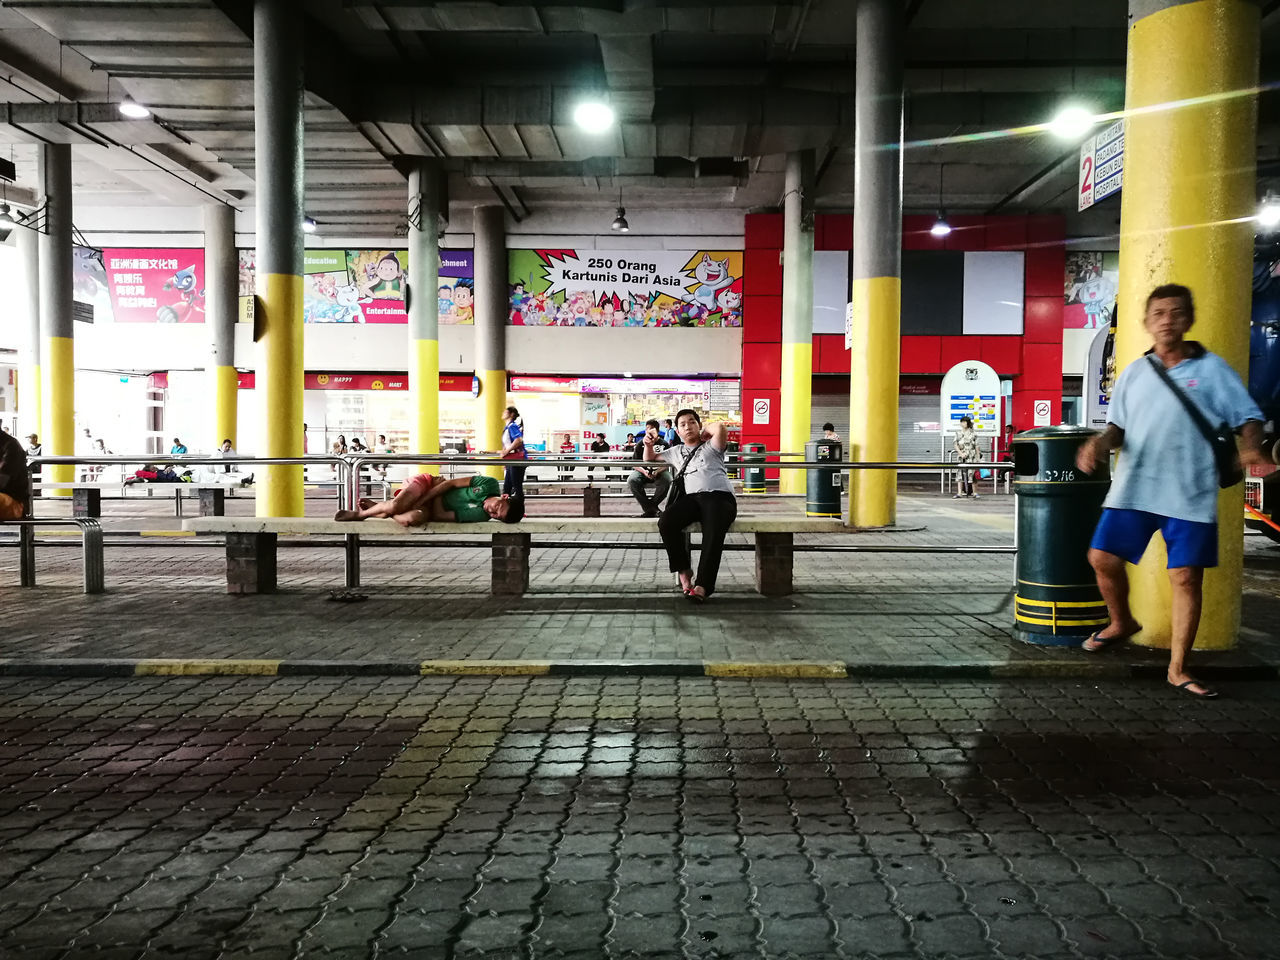 The bus terminal at Komtar Building's ground floor, Goergetown, Penang. Travel Malaysia Penang Georgetown Streetphotography People Transportation Streetside Lifestyles HuaweiP9